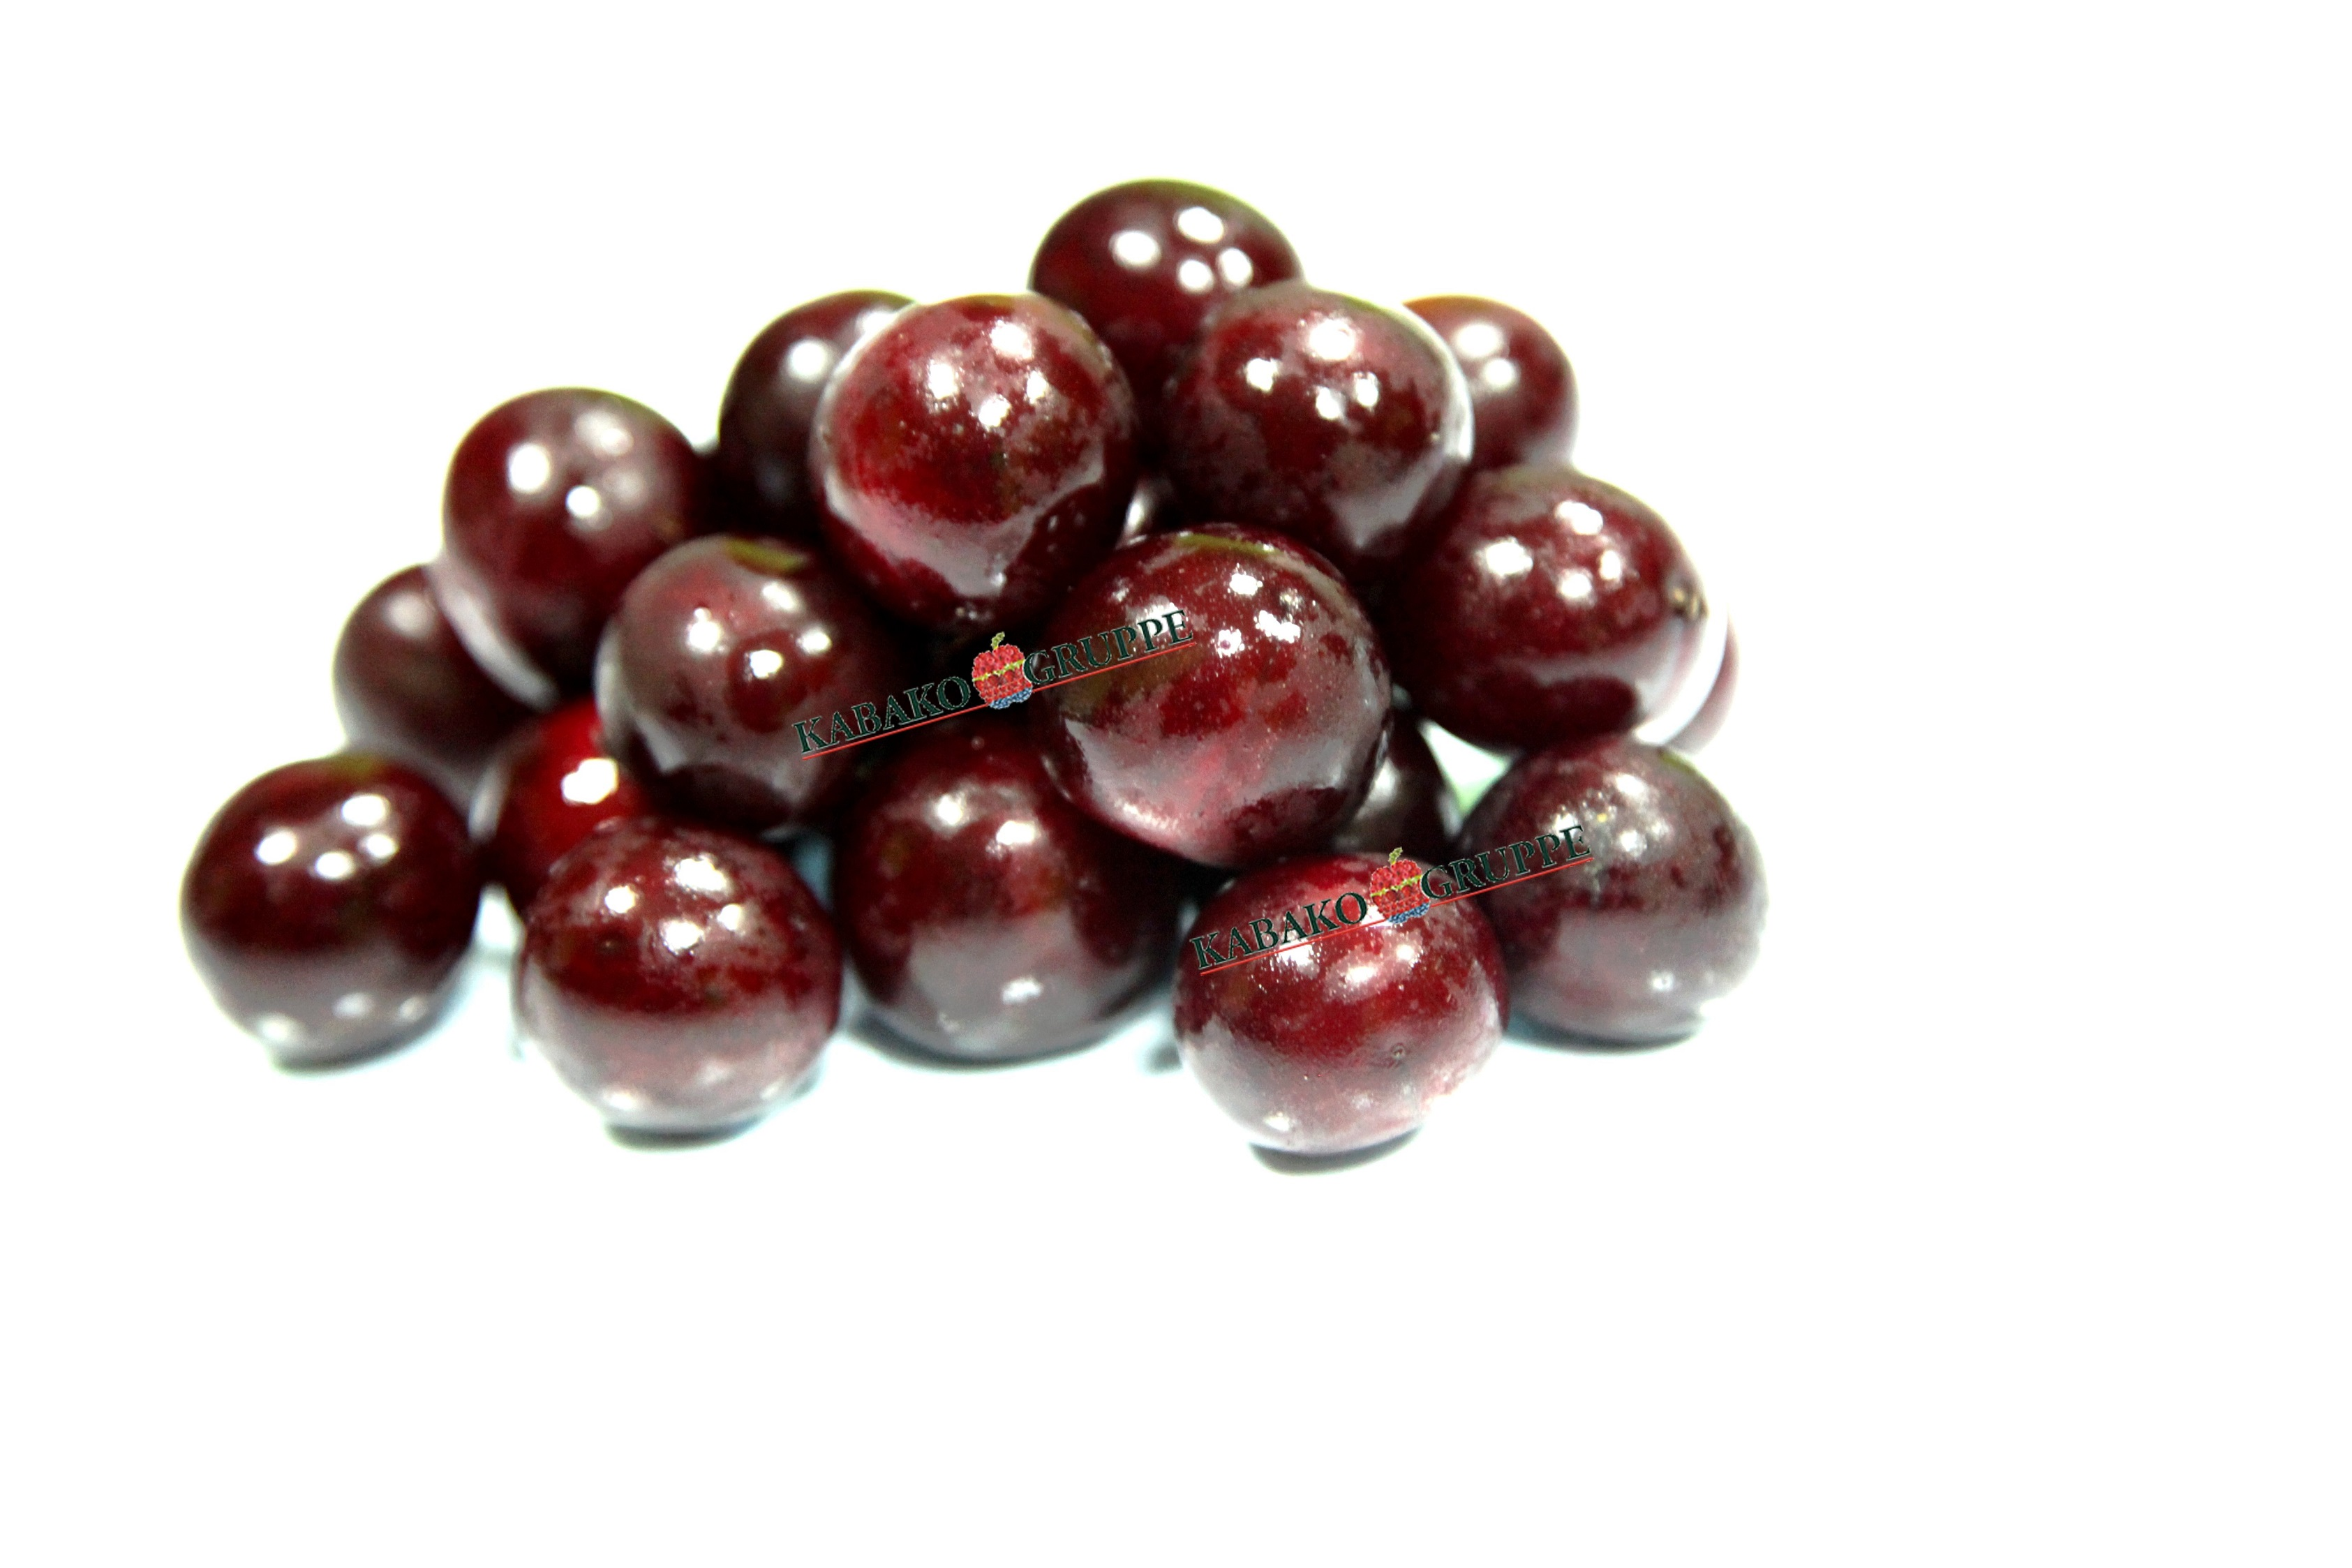 Frozen (IQF) Sour Cherries 7